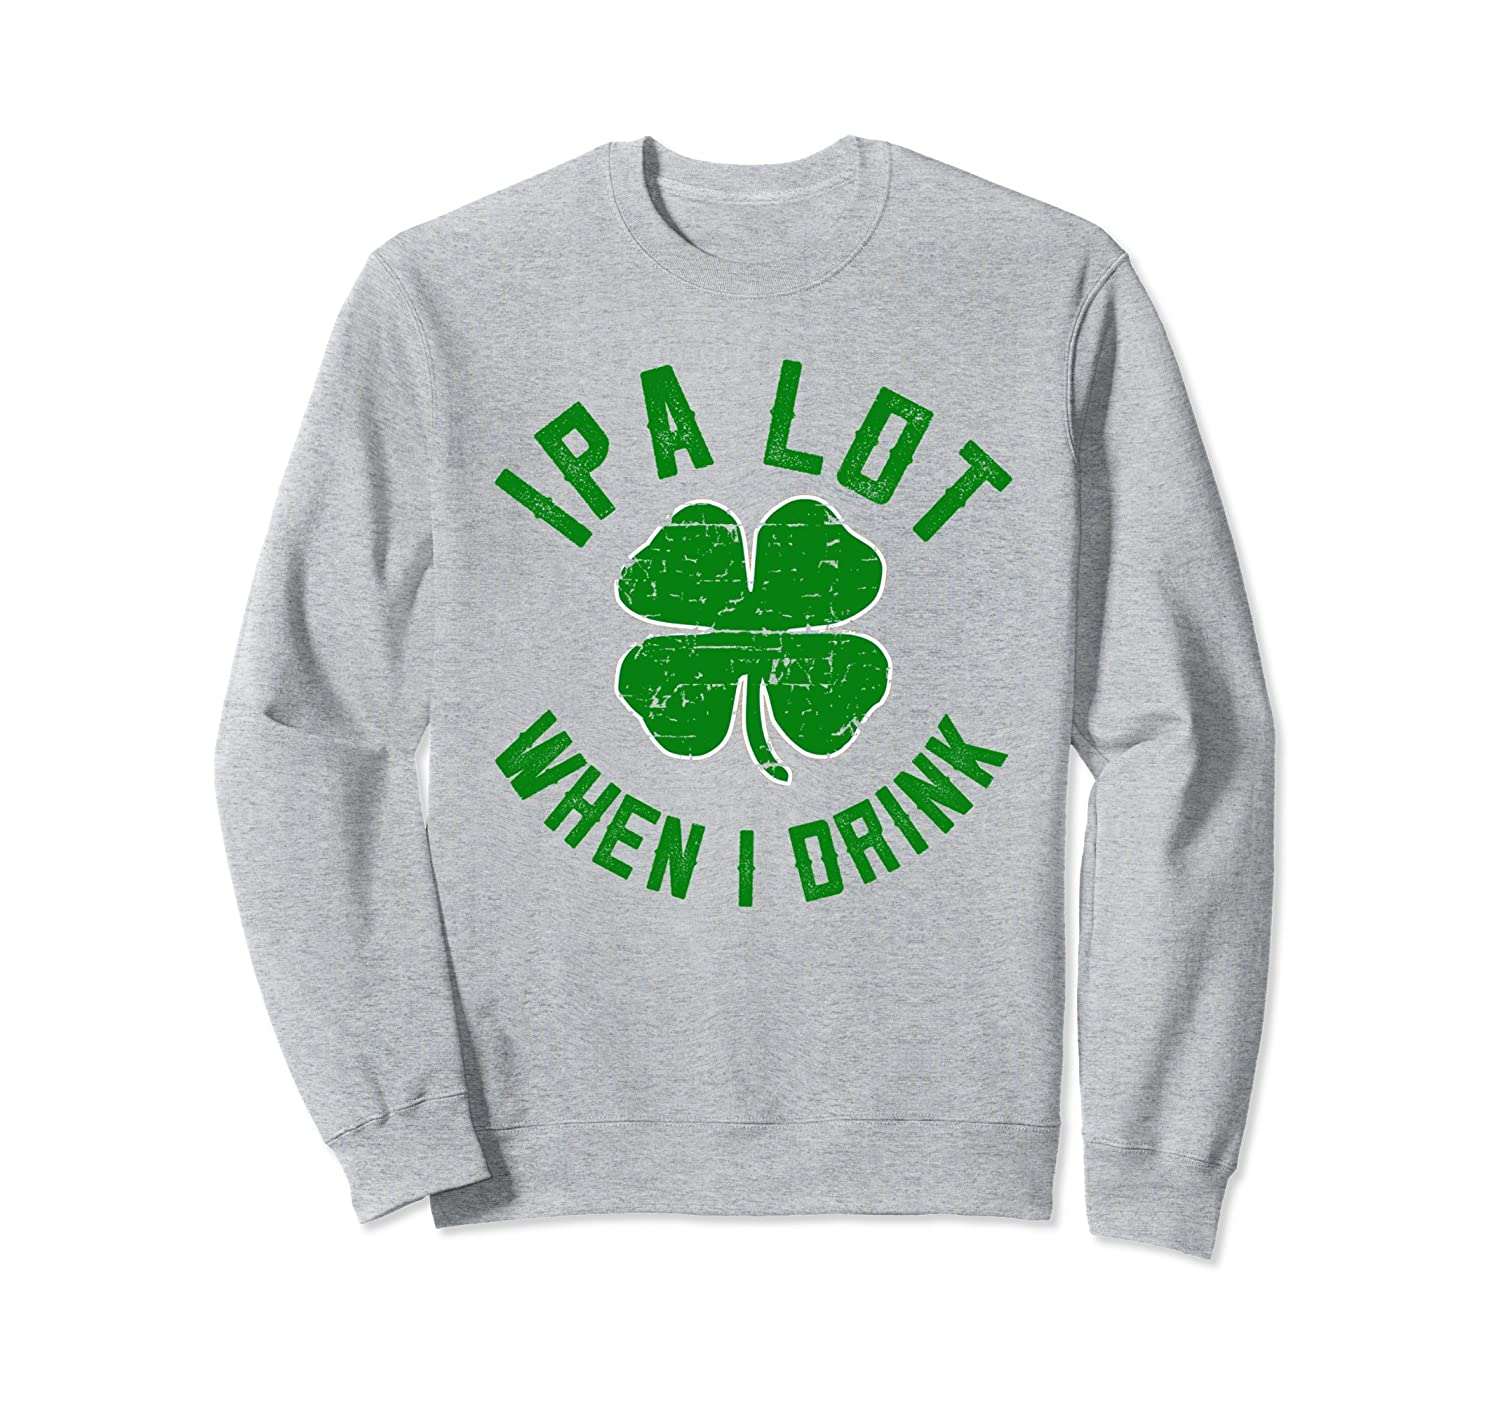 !PA Lot St Patrick day Irish Drinking Clover Sweatshirt-ah my shirt one gift